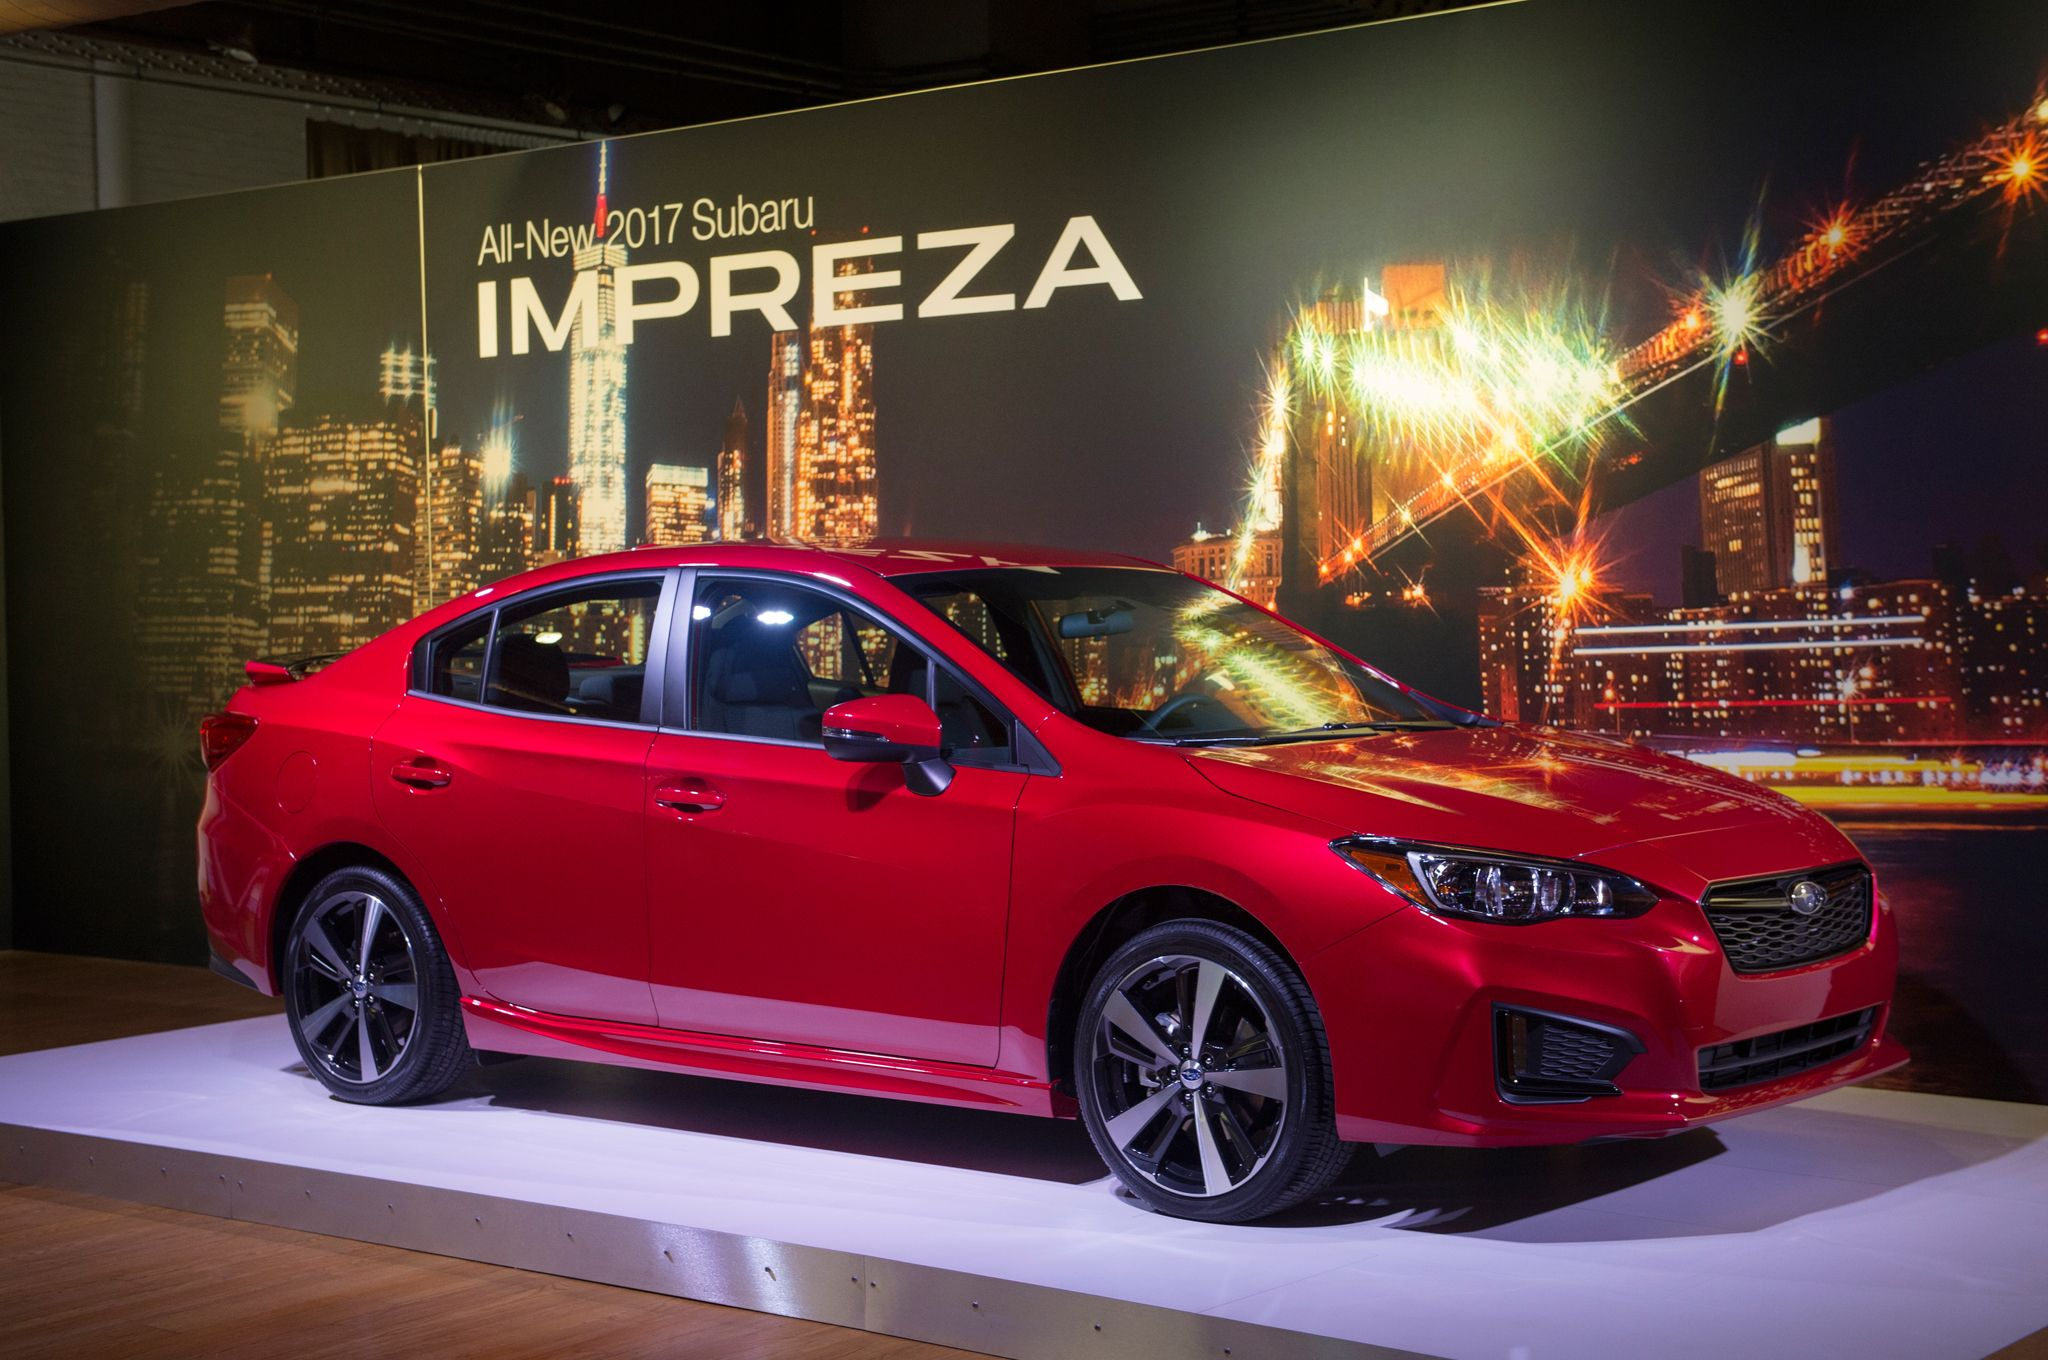 All New 2017 Subaru Impreza Bows In New York. Fresh Look And New Platform